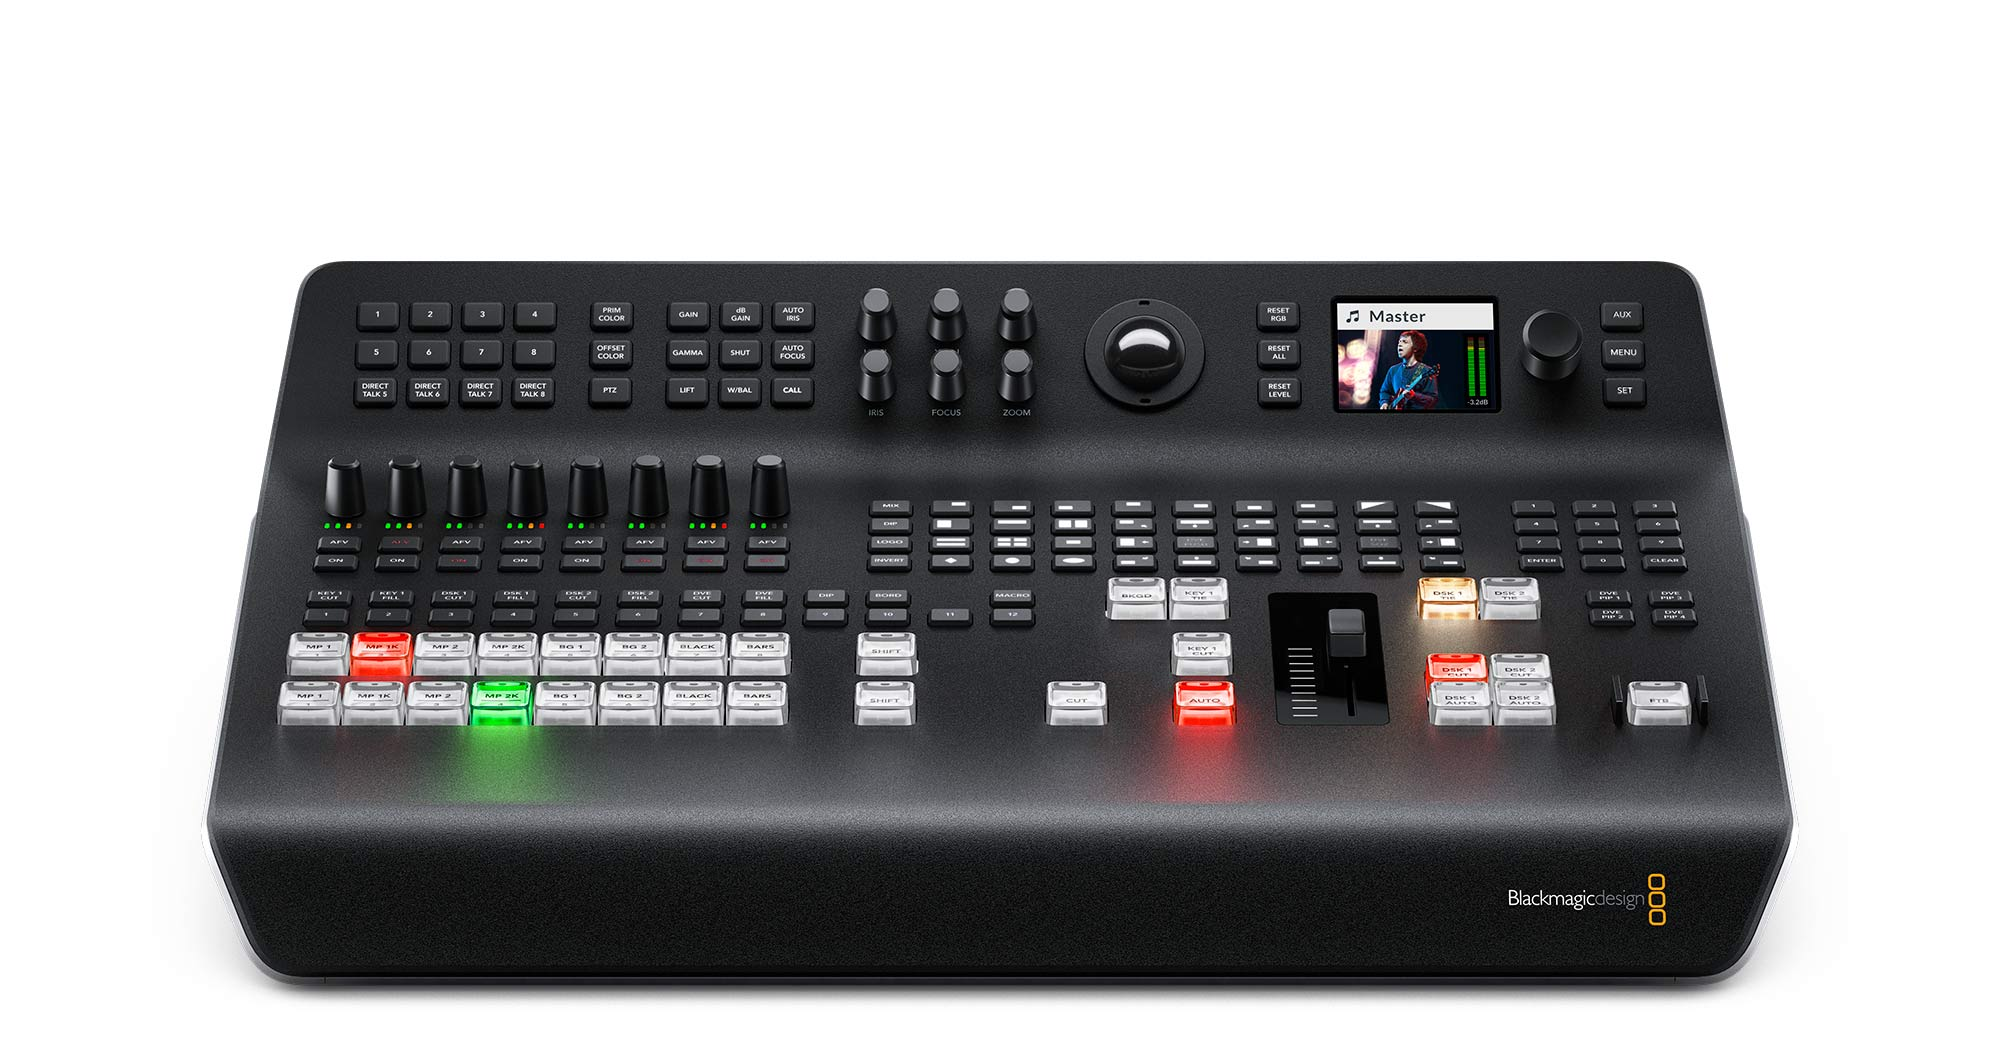 Blackmagic Design Launches Atem Television Studio Pro 4k